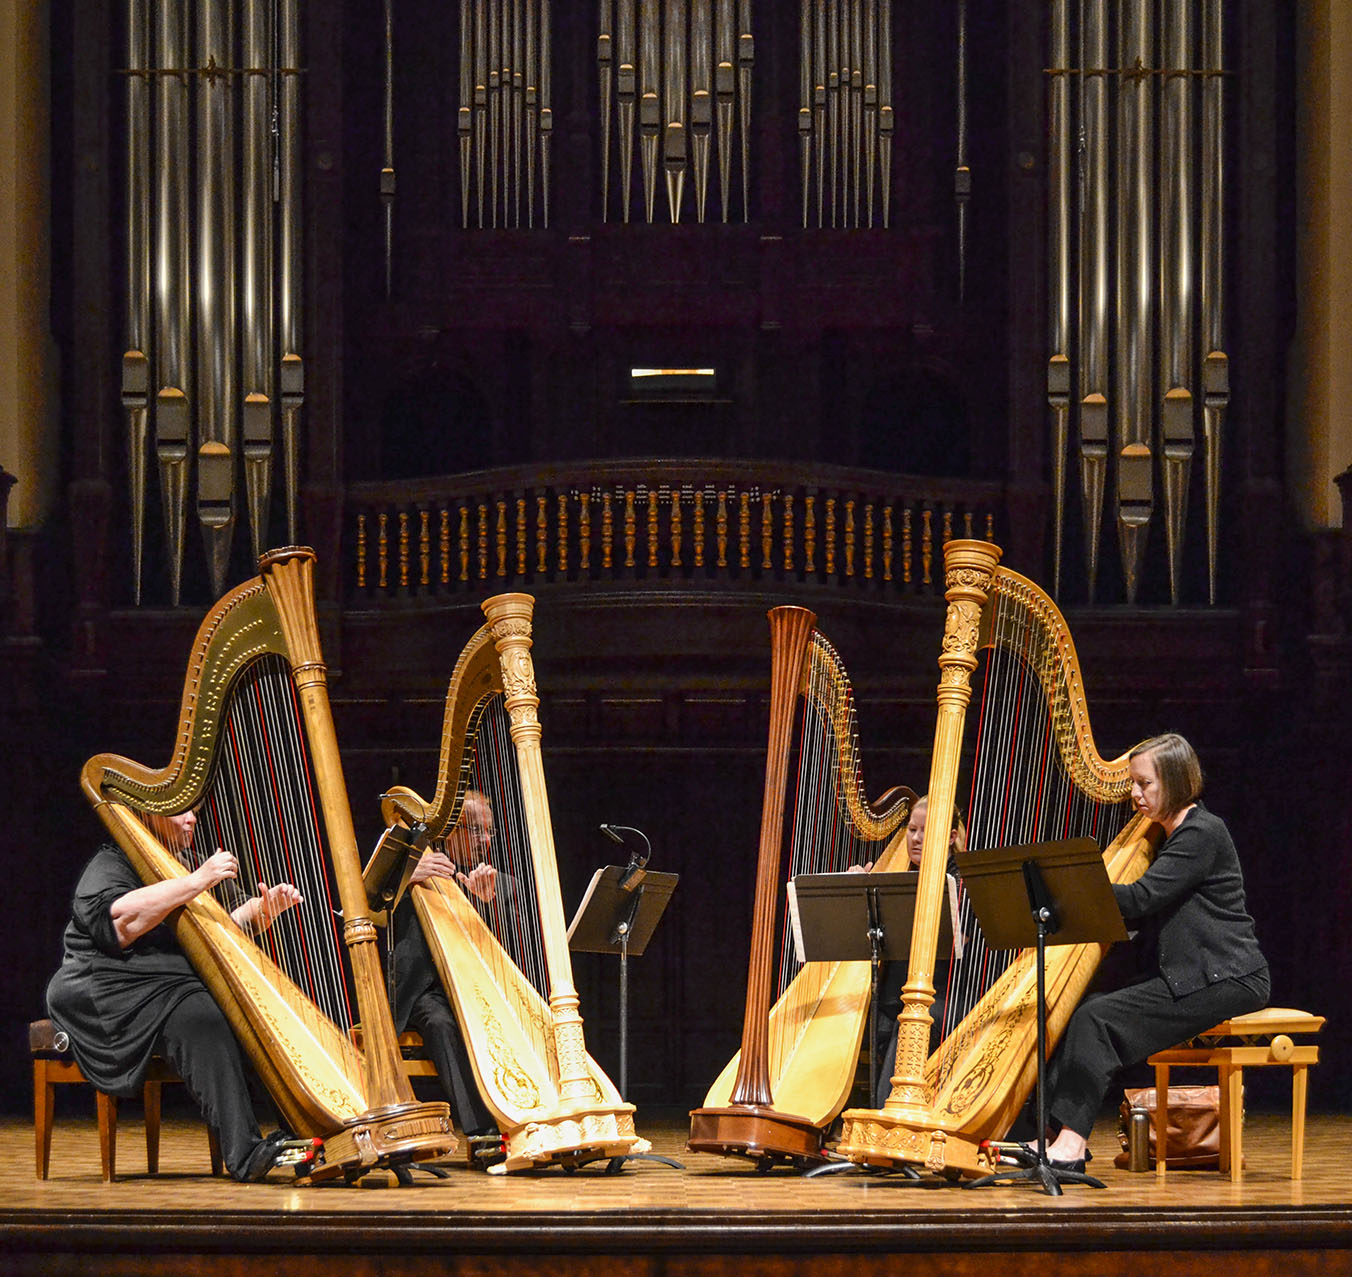 Musicians who harp together stay together | Campus Times